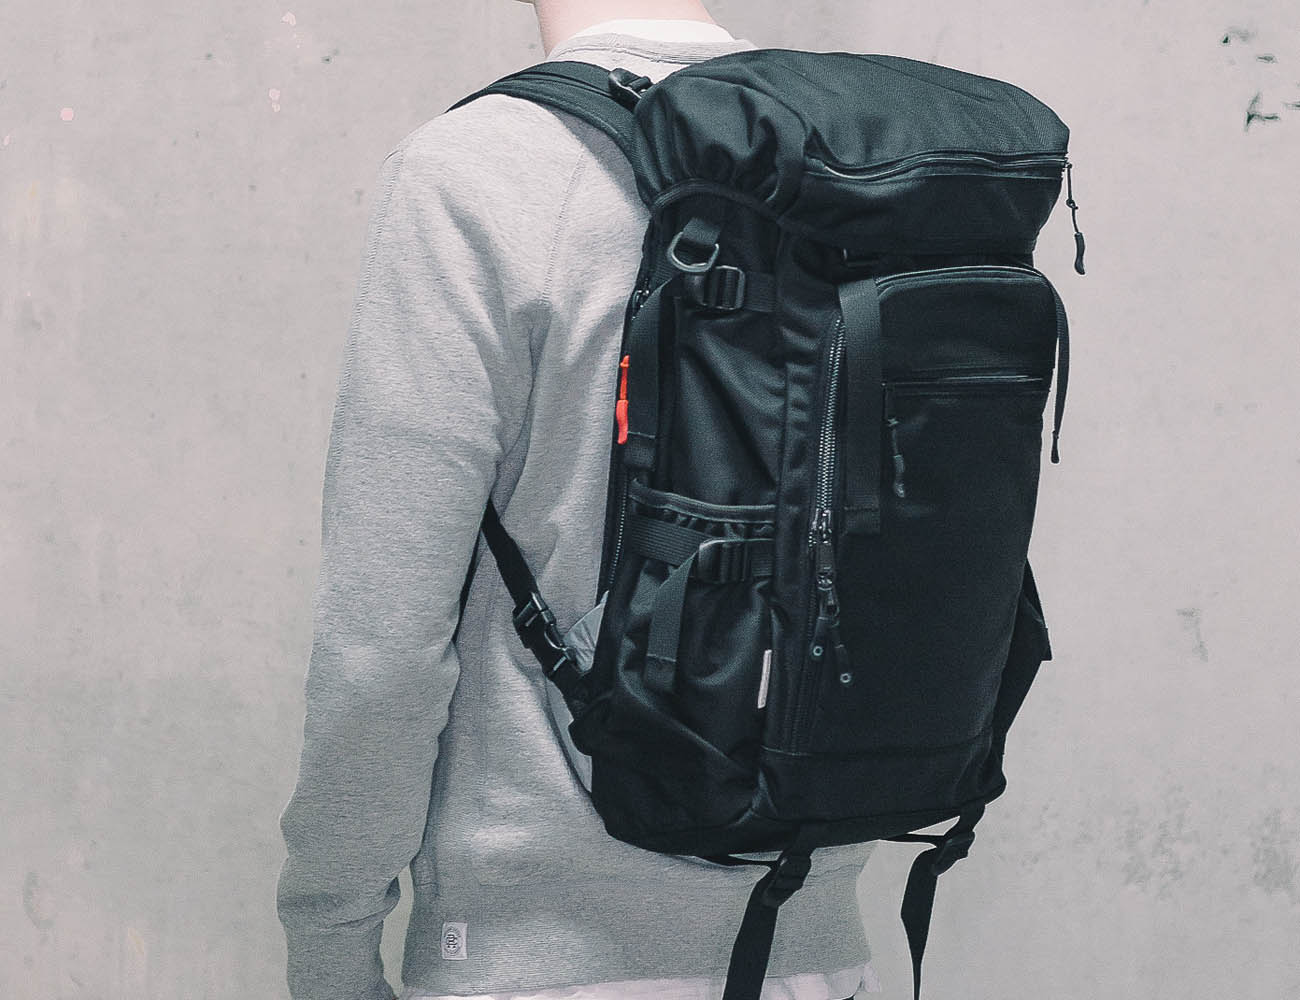 Black+Utility+Backpack+By+DSPTCH